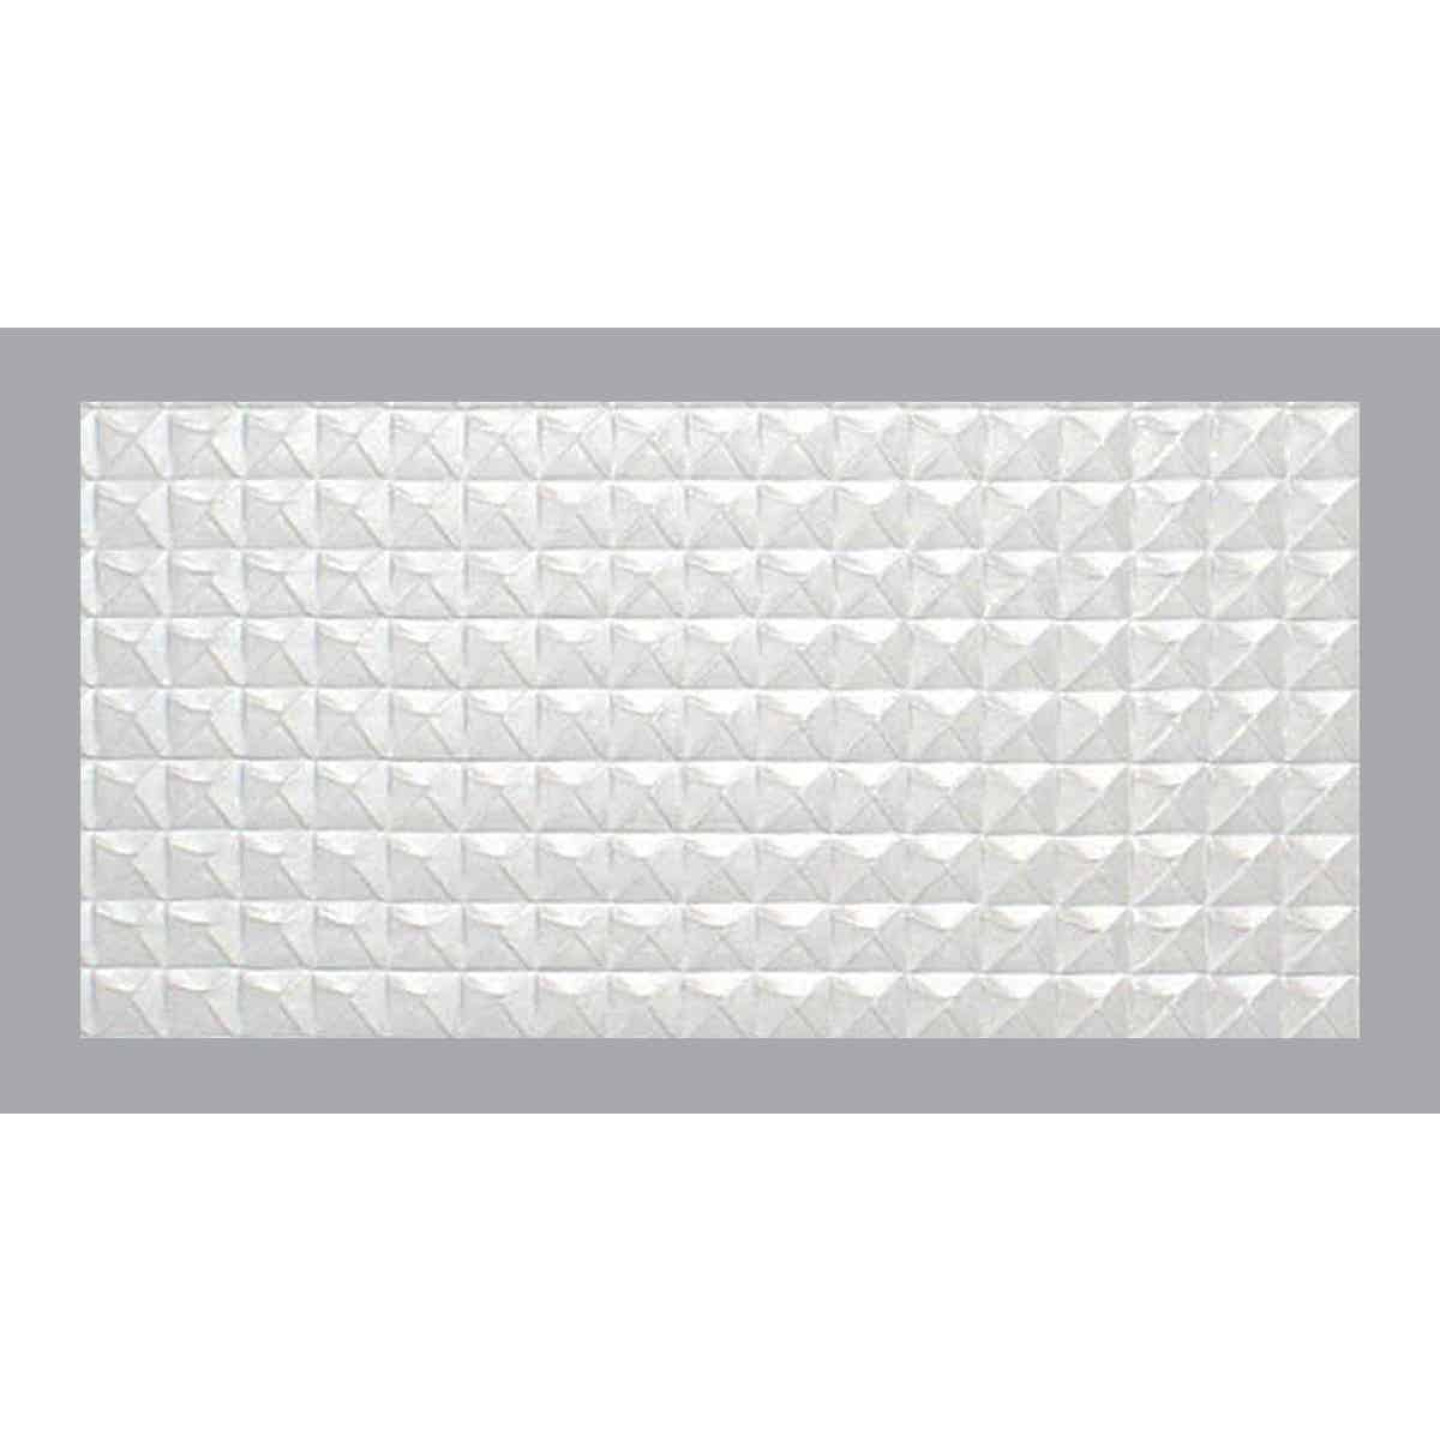 Parkland Performance SpectraTile Millennium 2 Ft. x 4 Ft. White PVC Diamond Pyramid Suspended Ceiling Tile  Image 1